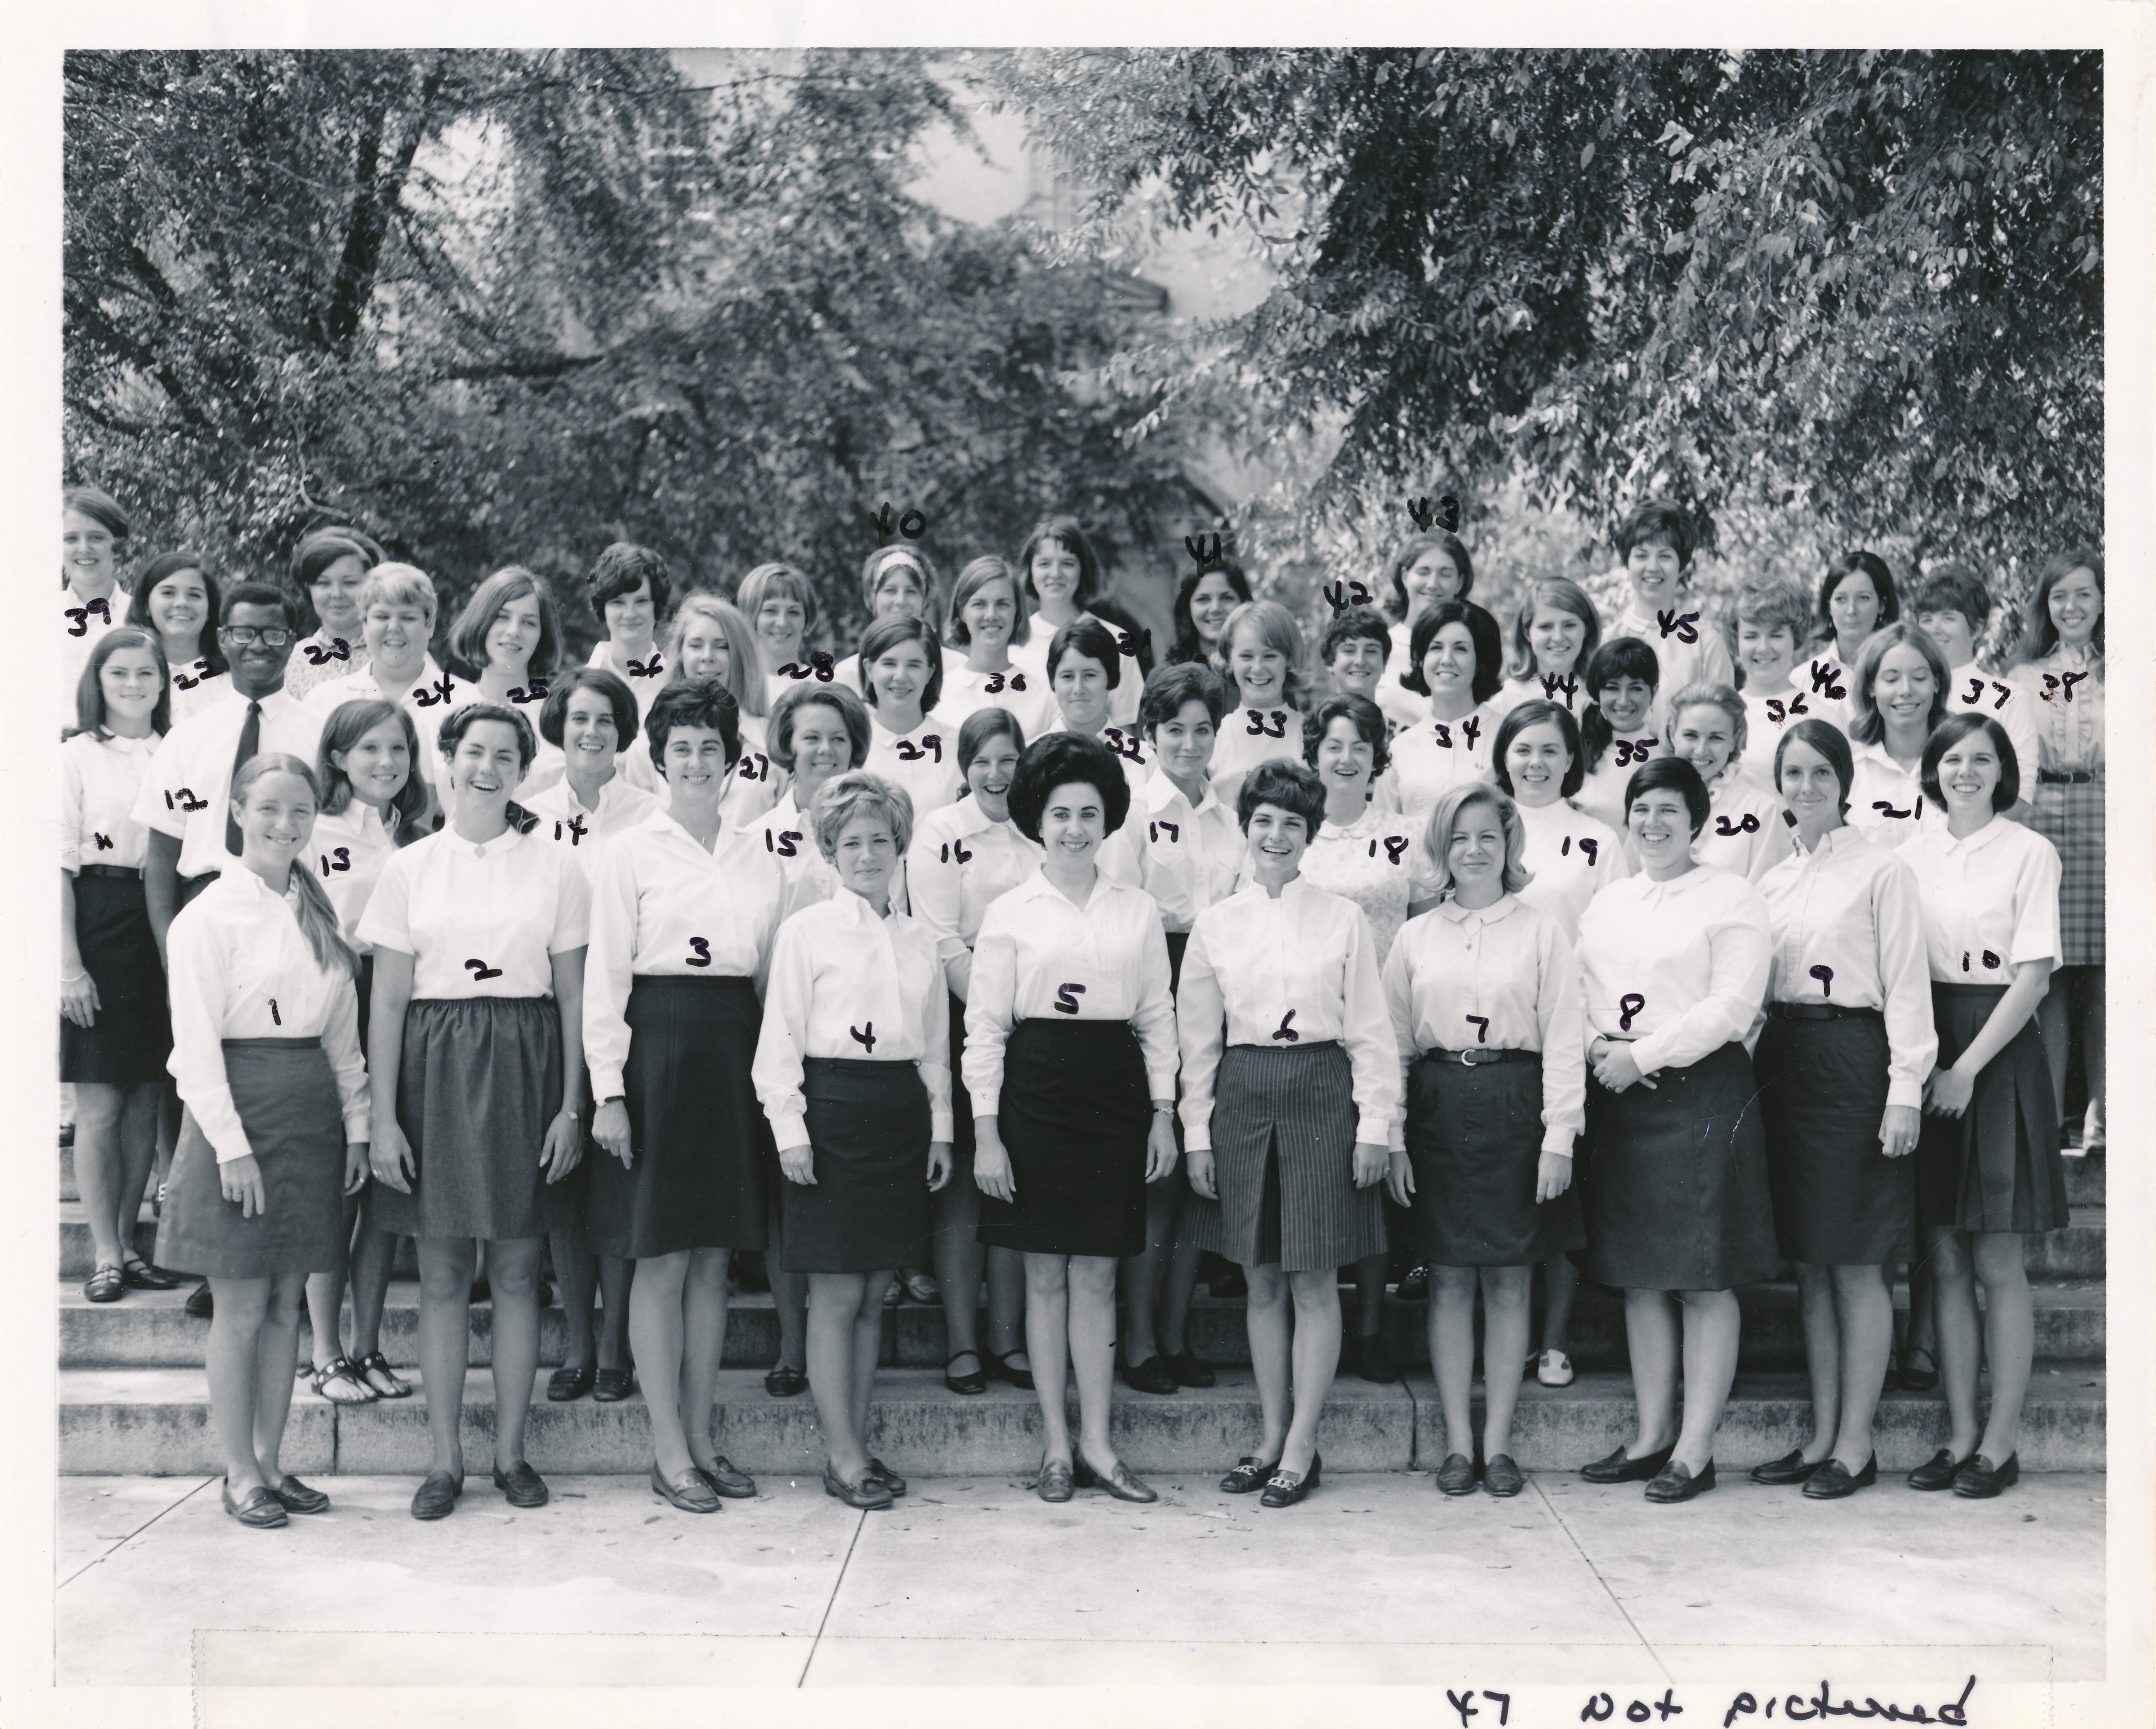 1972 Class photo of Nursing student graduates including one African American male student named Bob Isom.